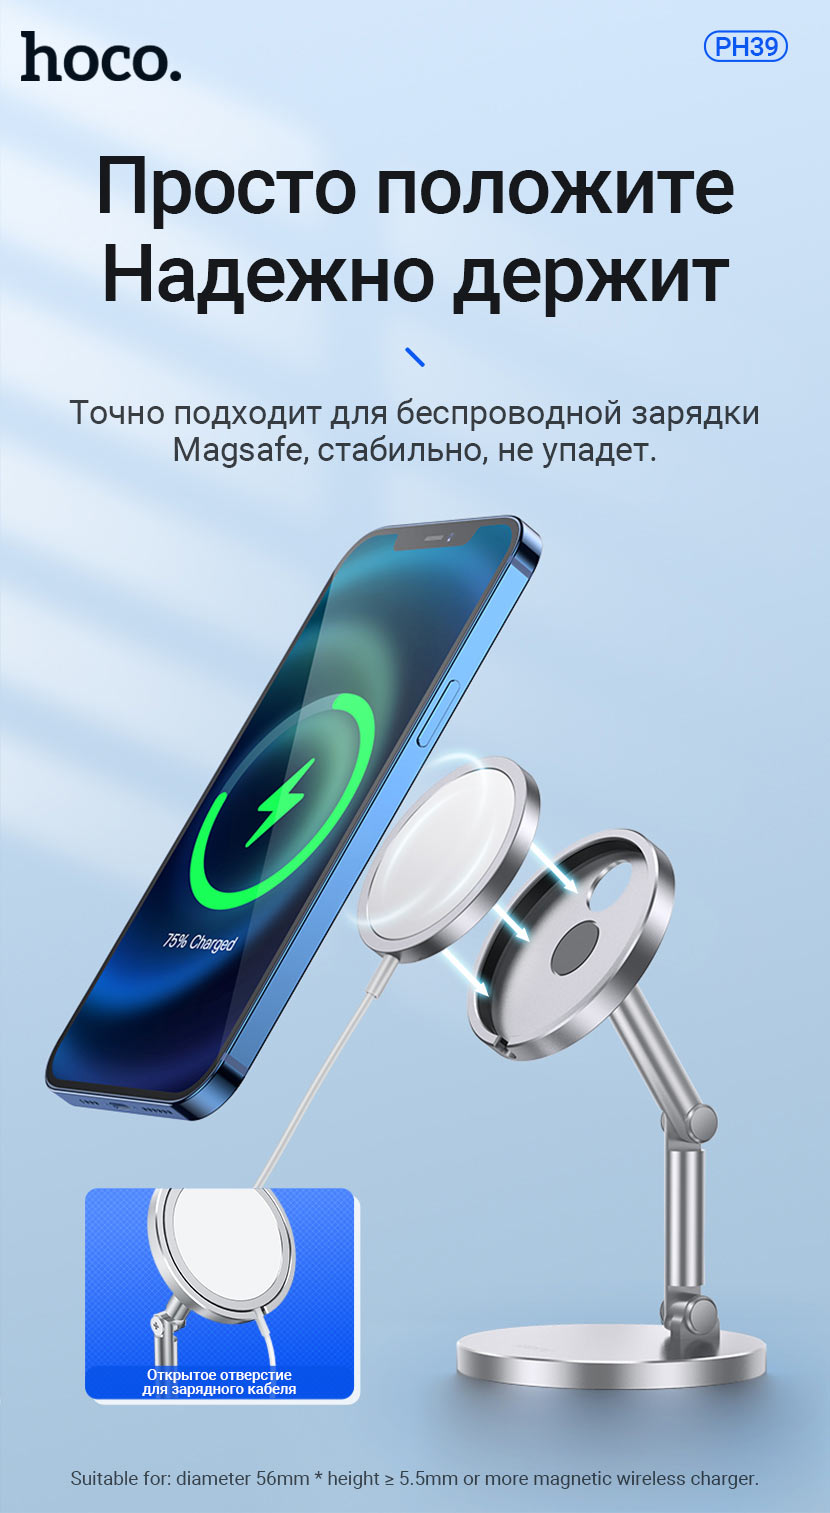 hoco news ph39 daring magnetic desktop stand with wireless charging firmly ru